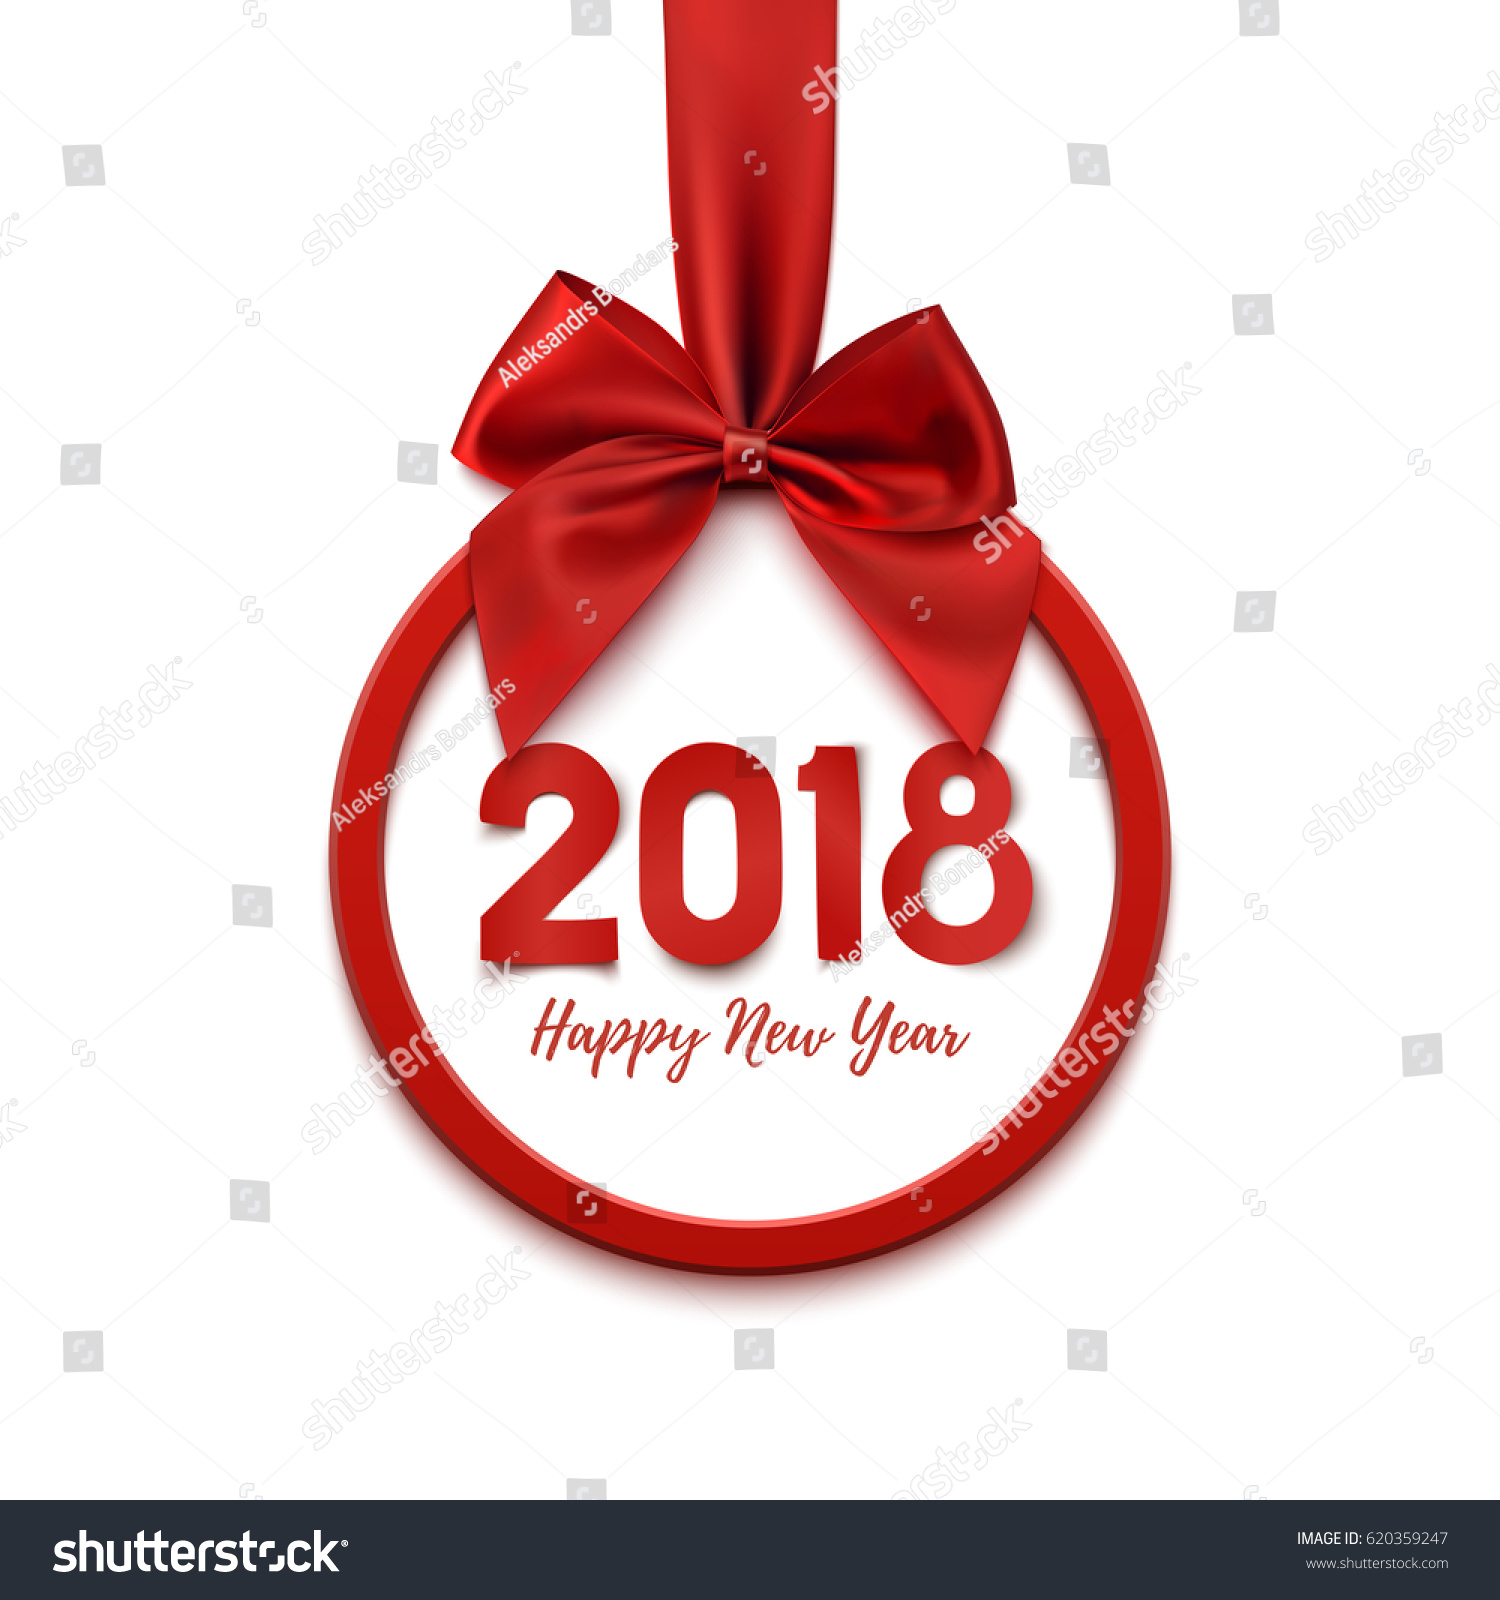 happy new year 2018 round banner with red ribbon and bow on white background